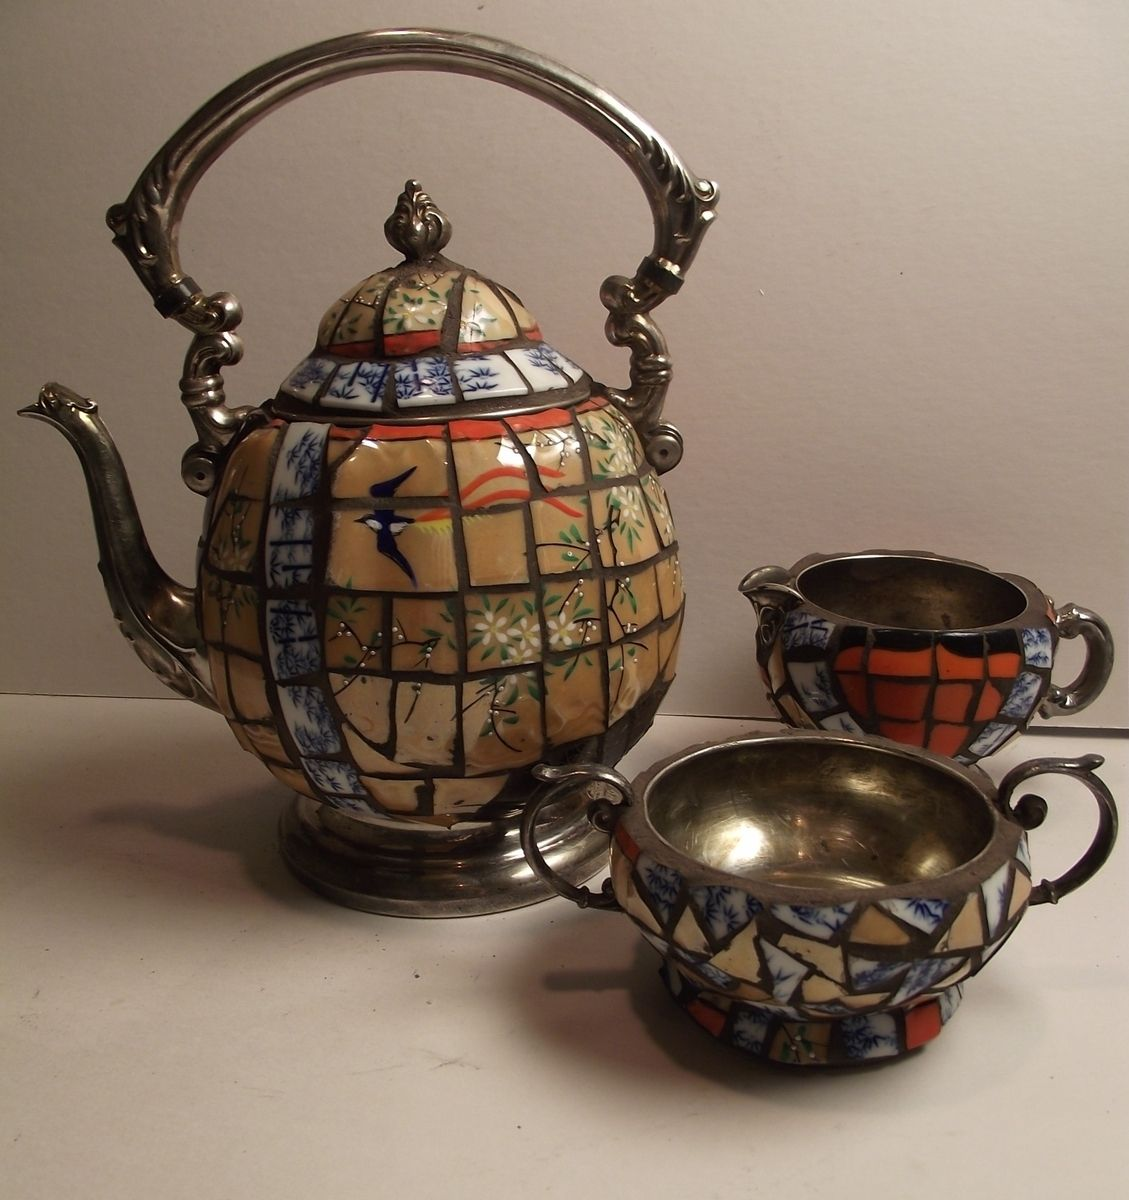 Hand Made Mosaic Silver Teapot Decorated With Broken China